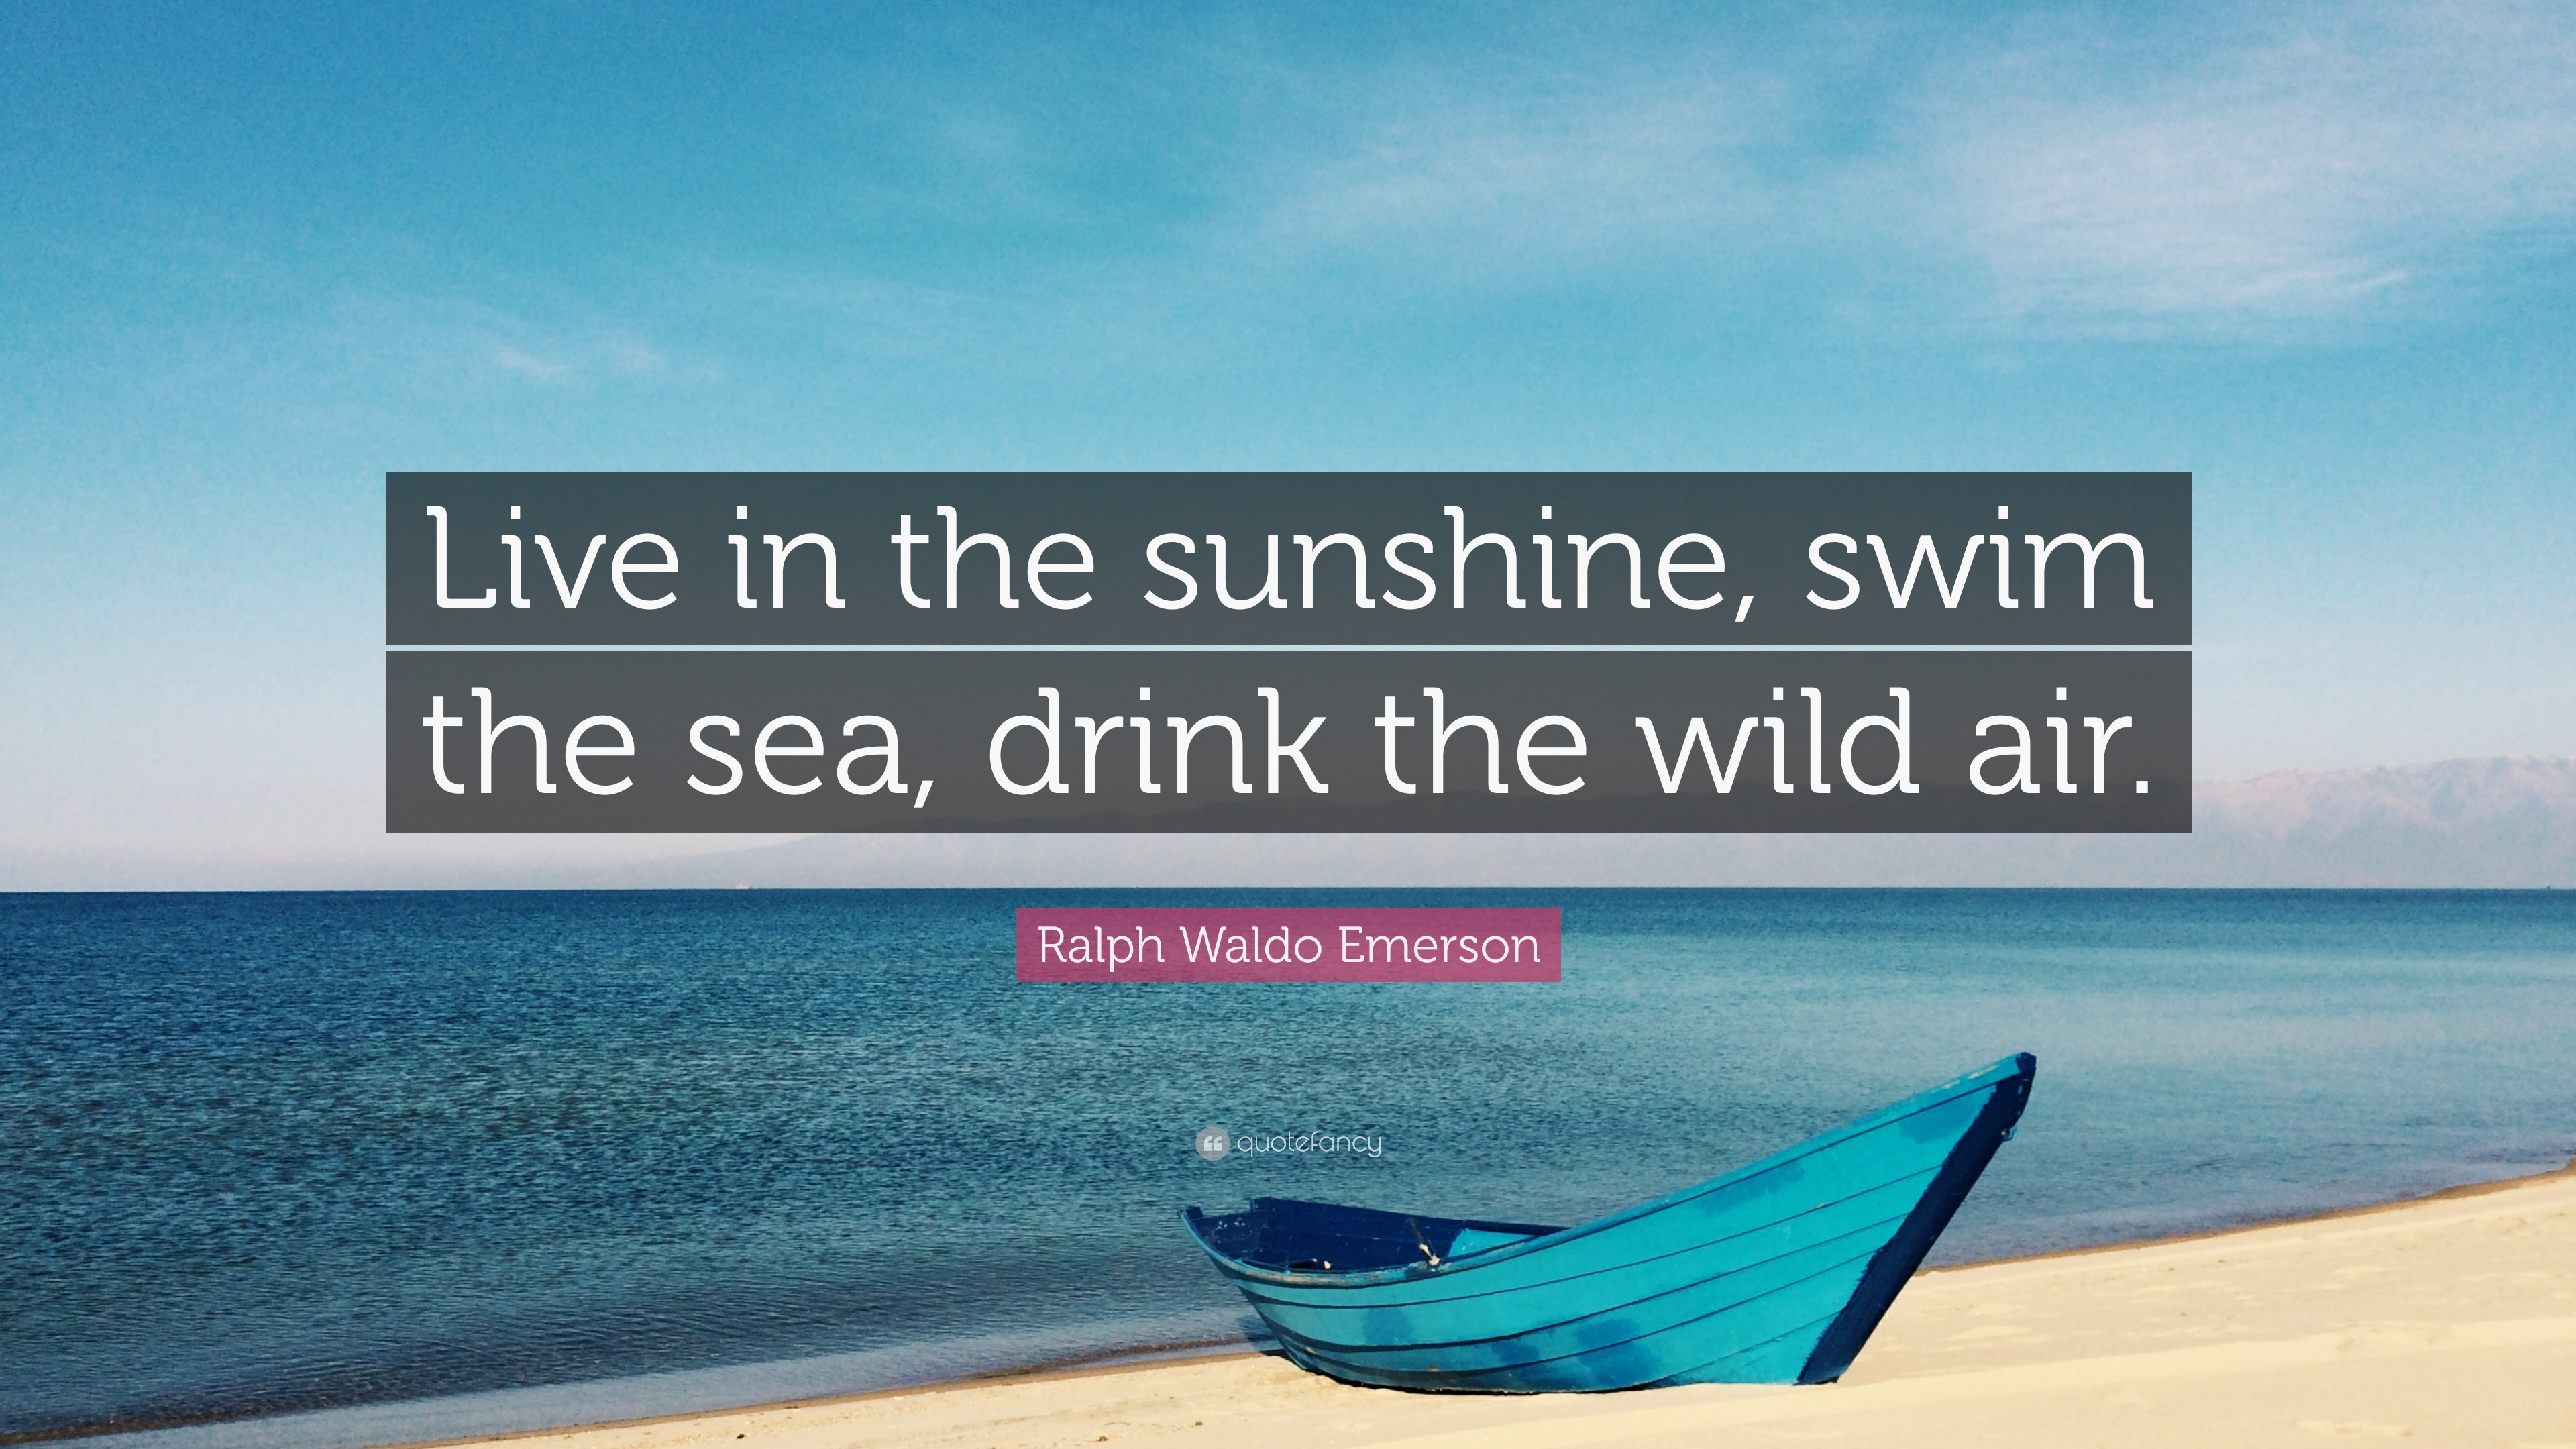 ralph waldo emerson live in the sunshine